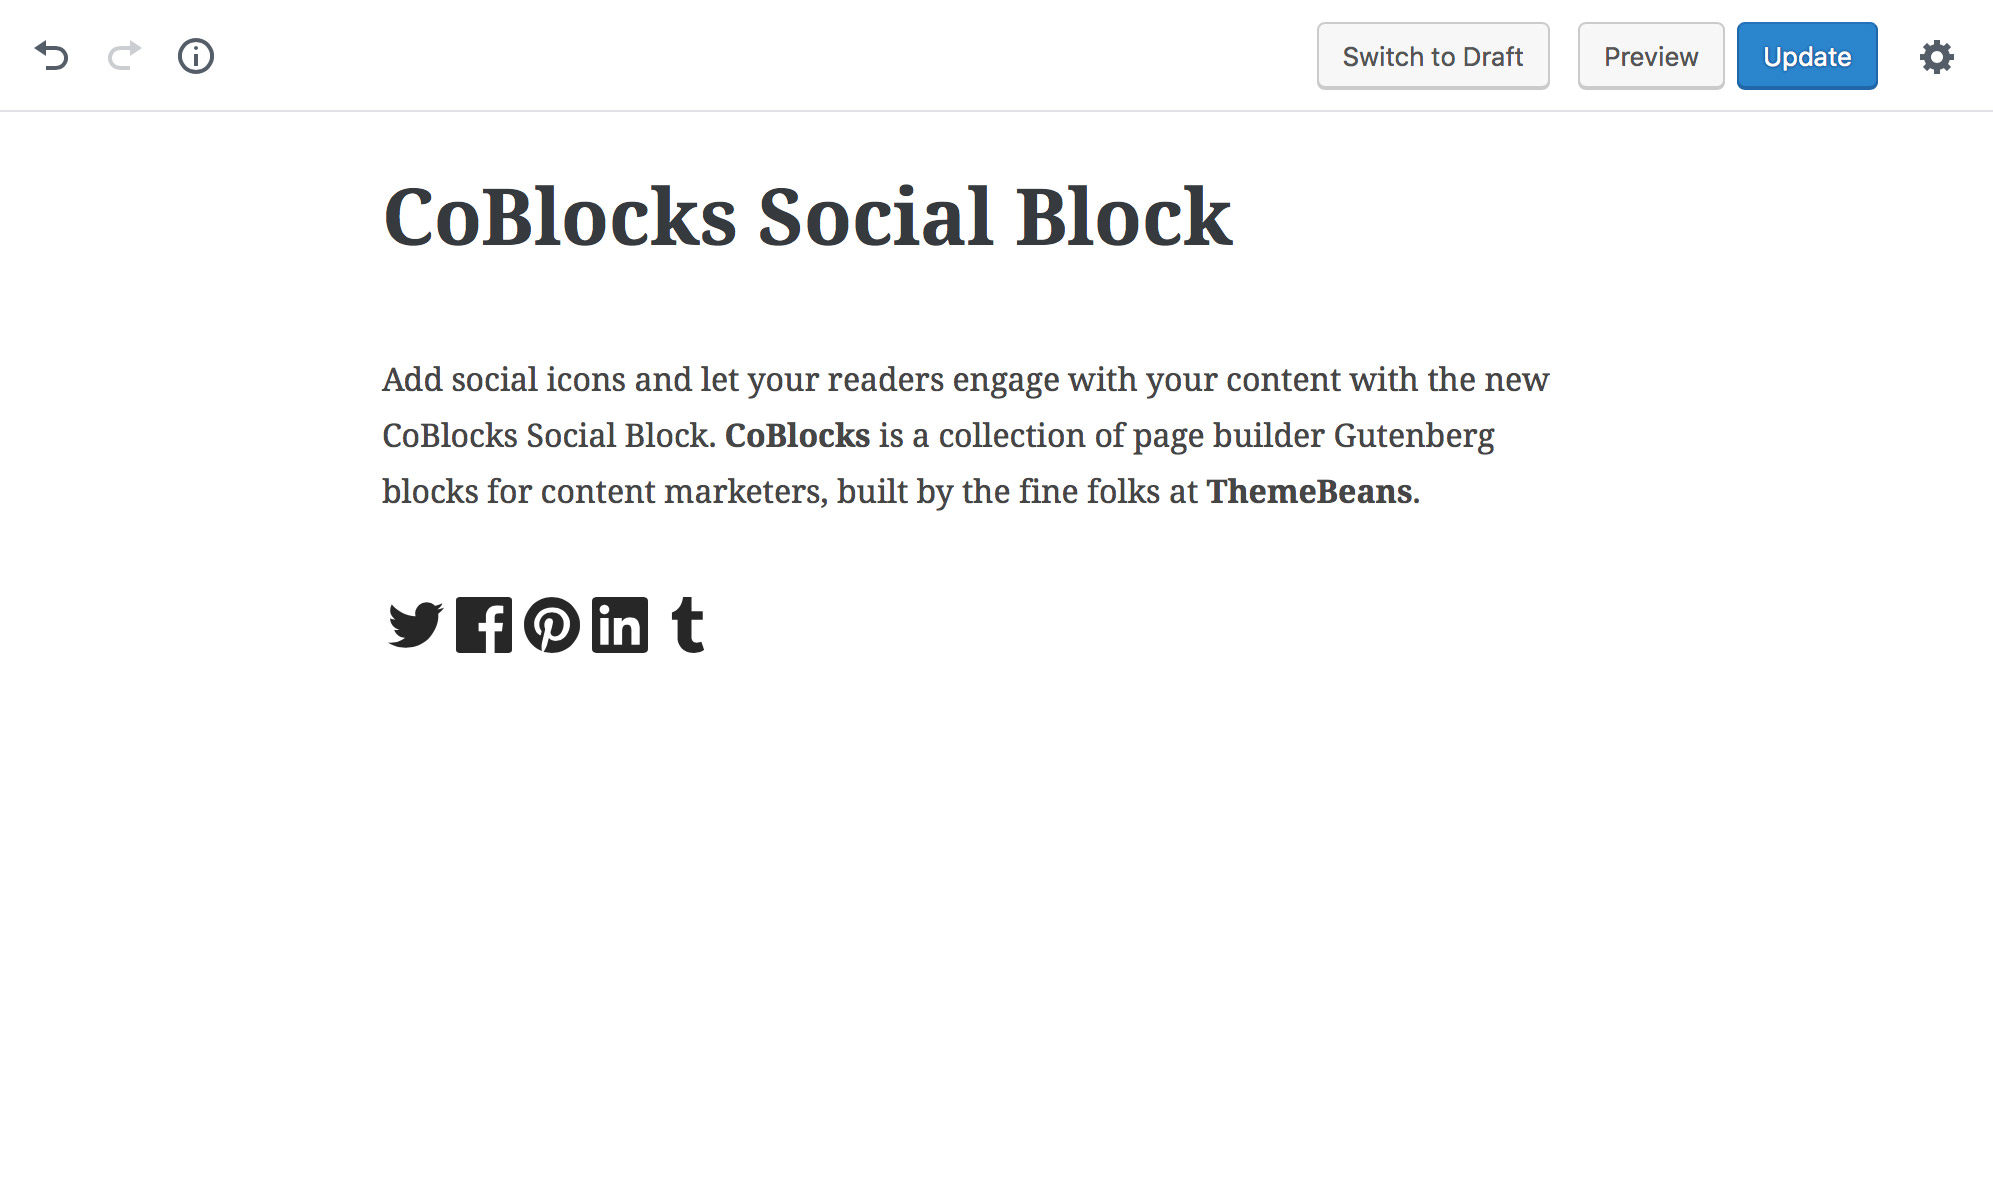 CoBlocks Social Block